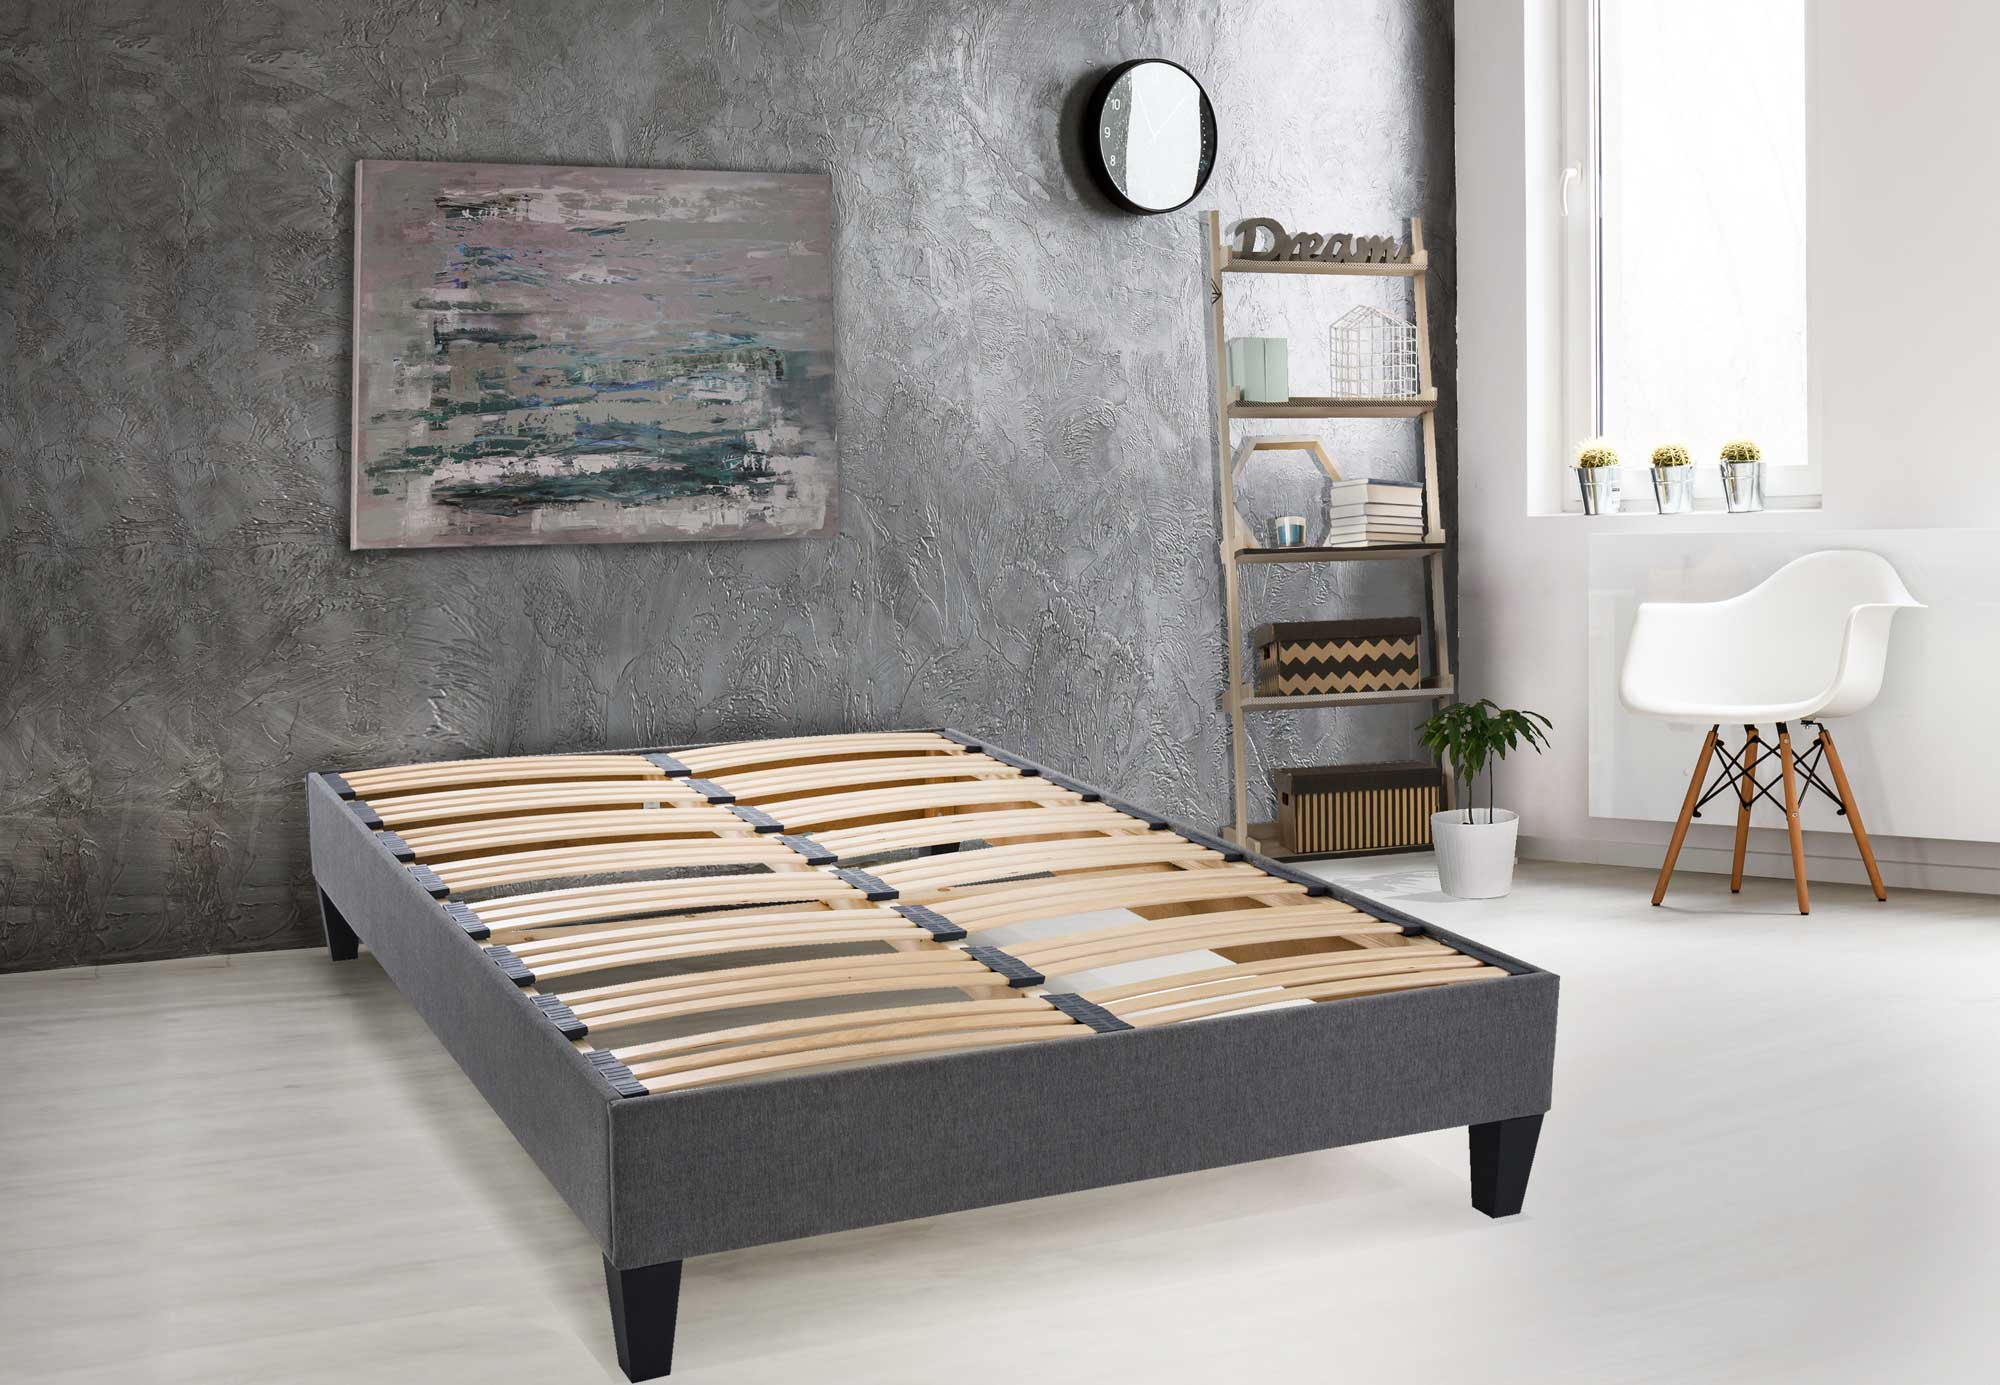 sommier en kit avec une ep 20 cm gris homemaison vente en ligne matelas. Black Bedroom Furniture Sets. Home Design Ideas